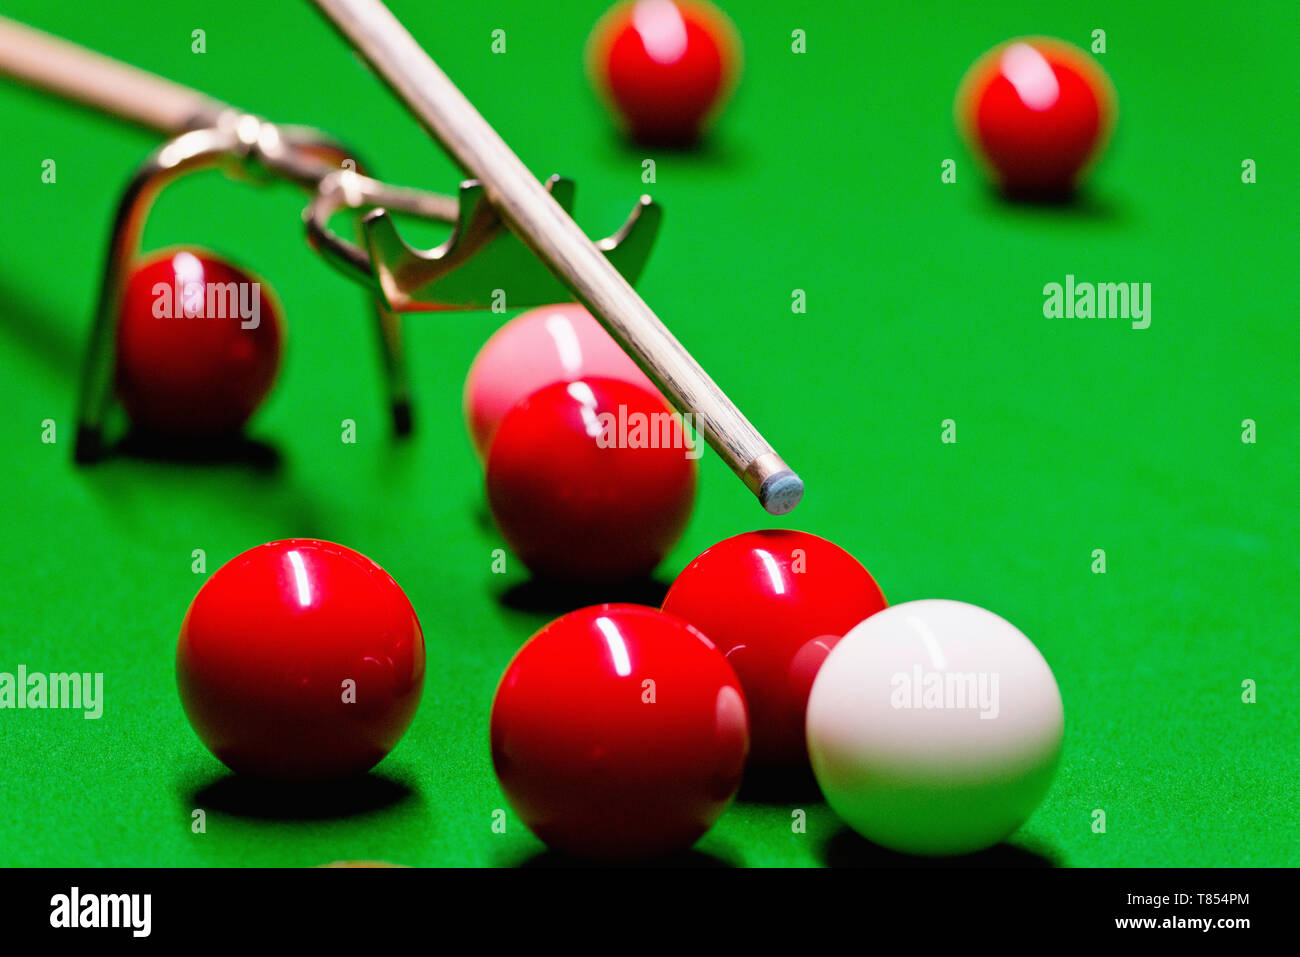 Snooker cue on spider rest - Stock Image